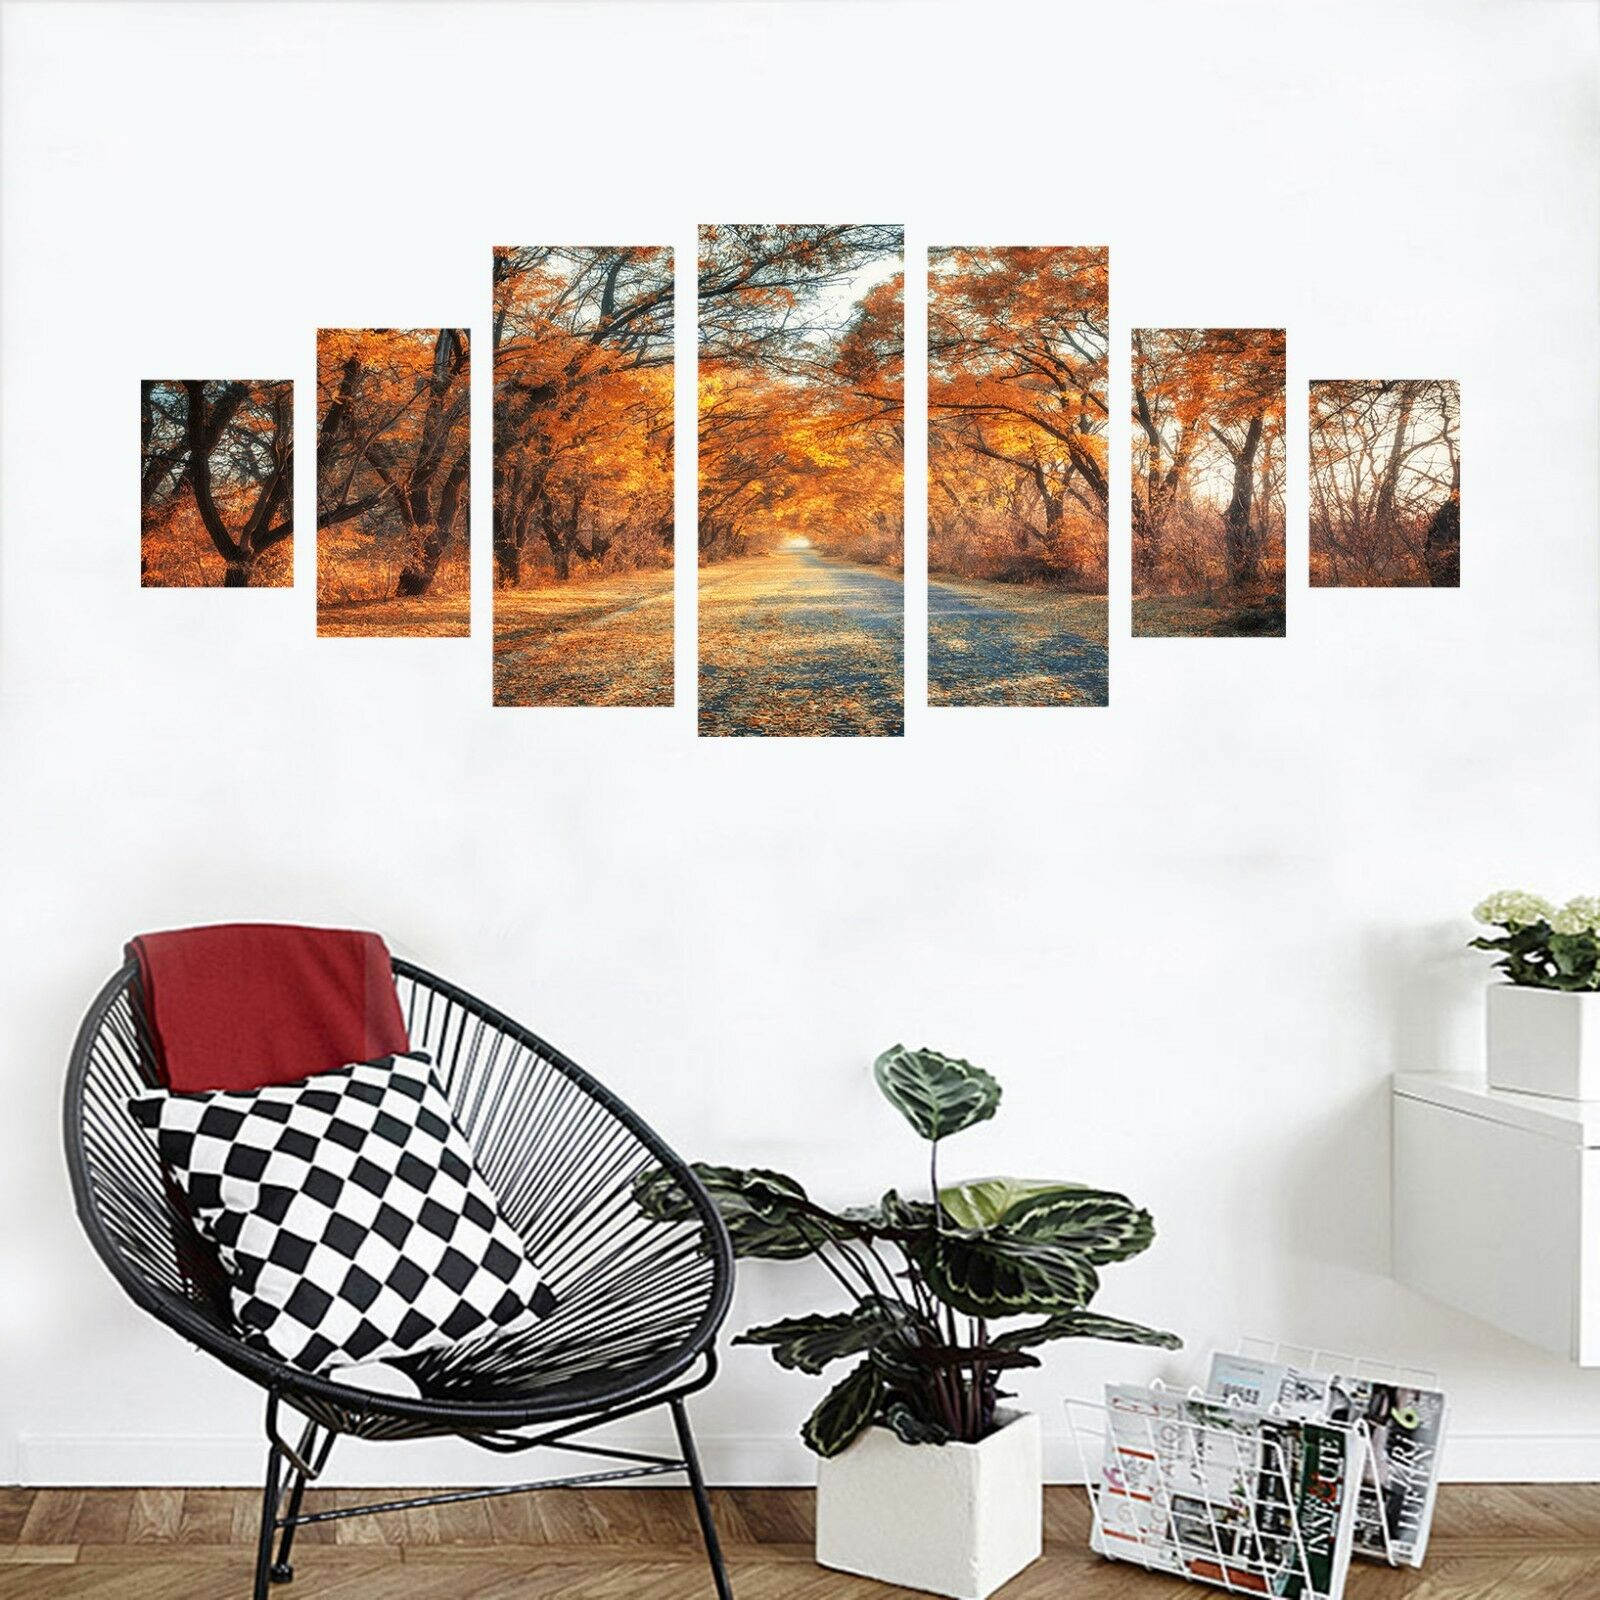 3D Way Forest 5645 Unframed Print Wall Paper Decal Wall Deco Indoor AJ Wall